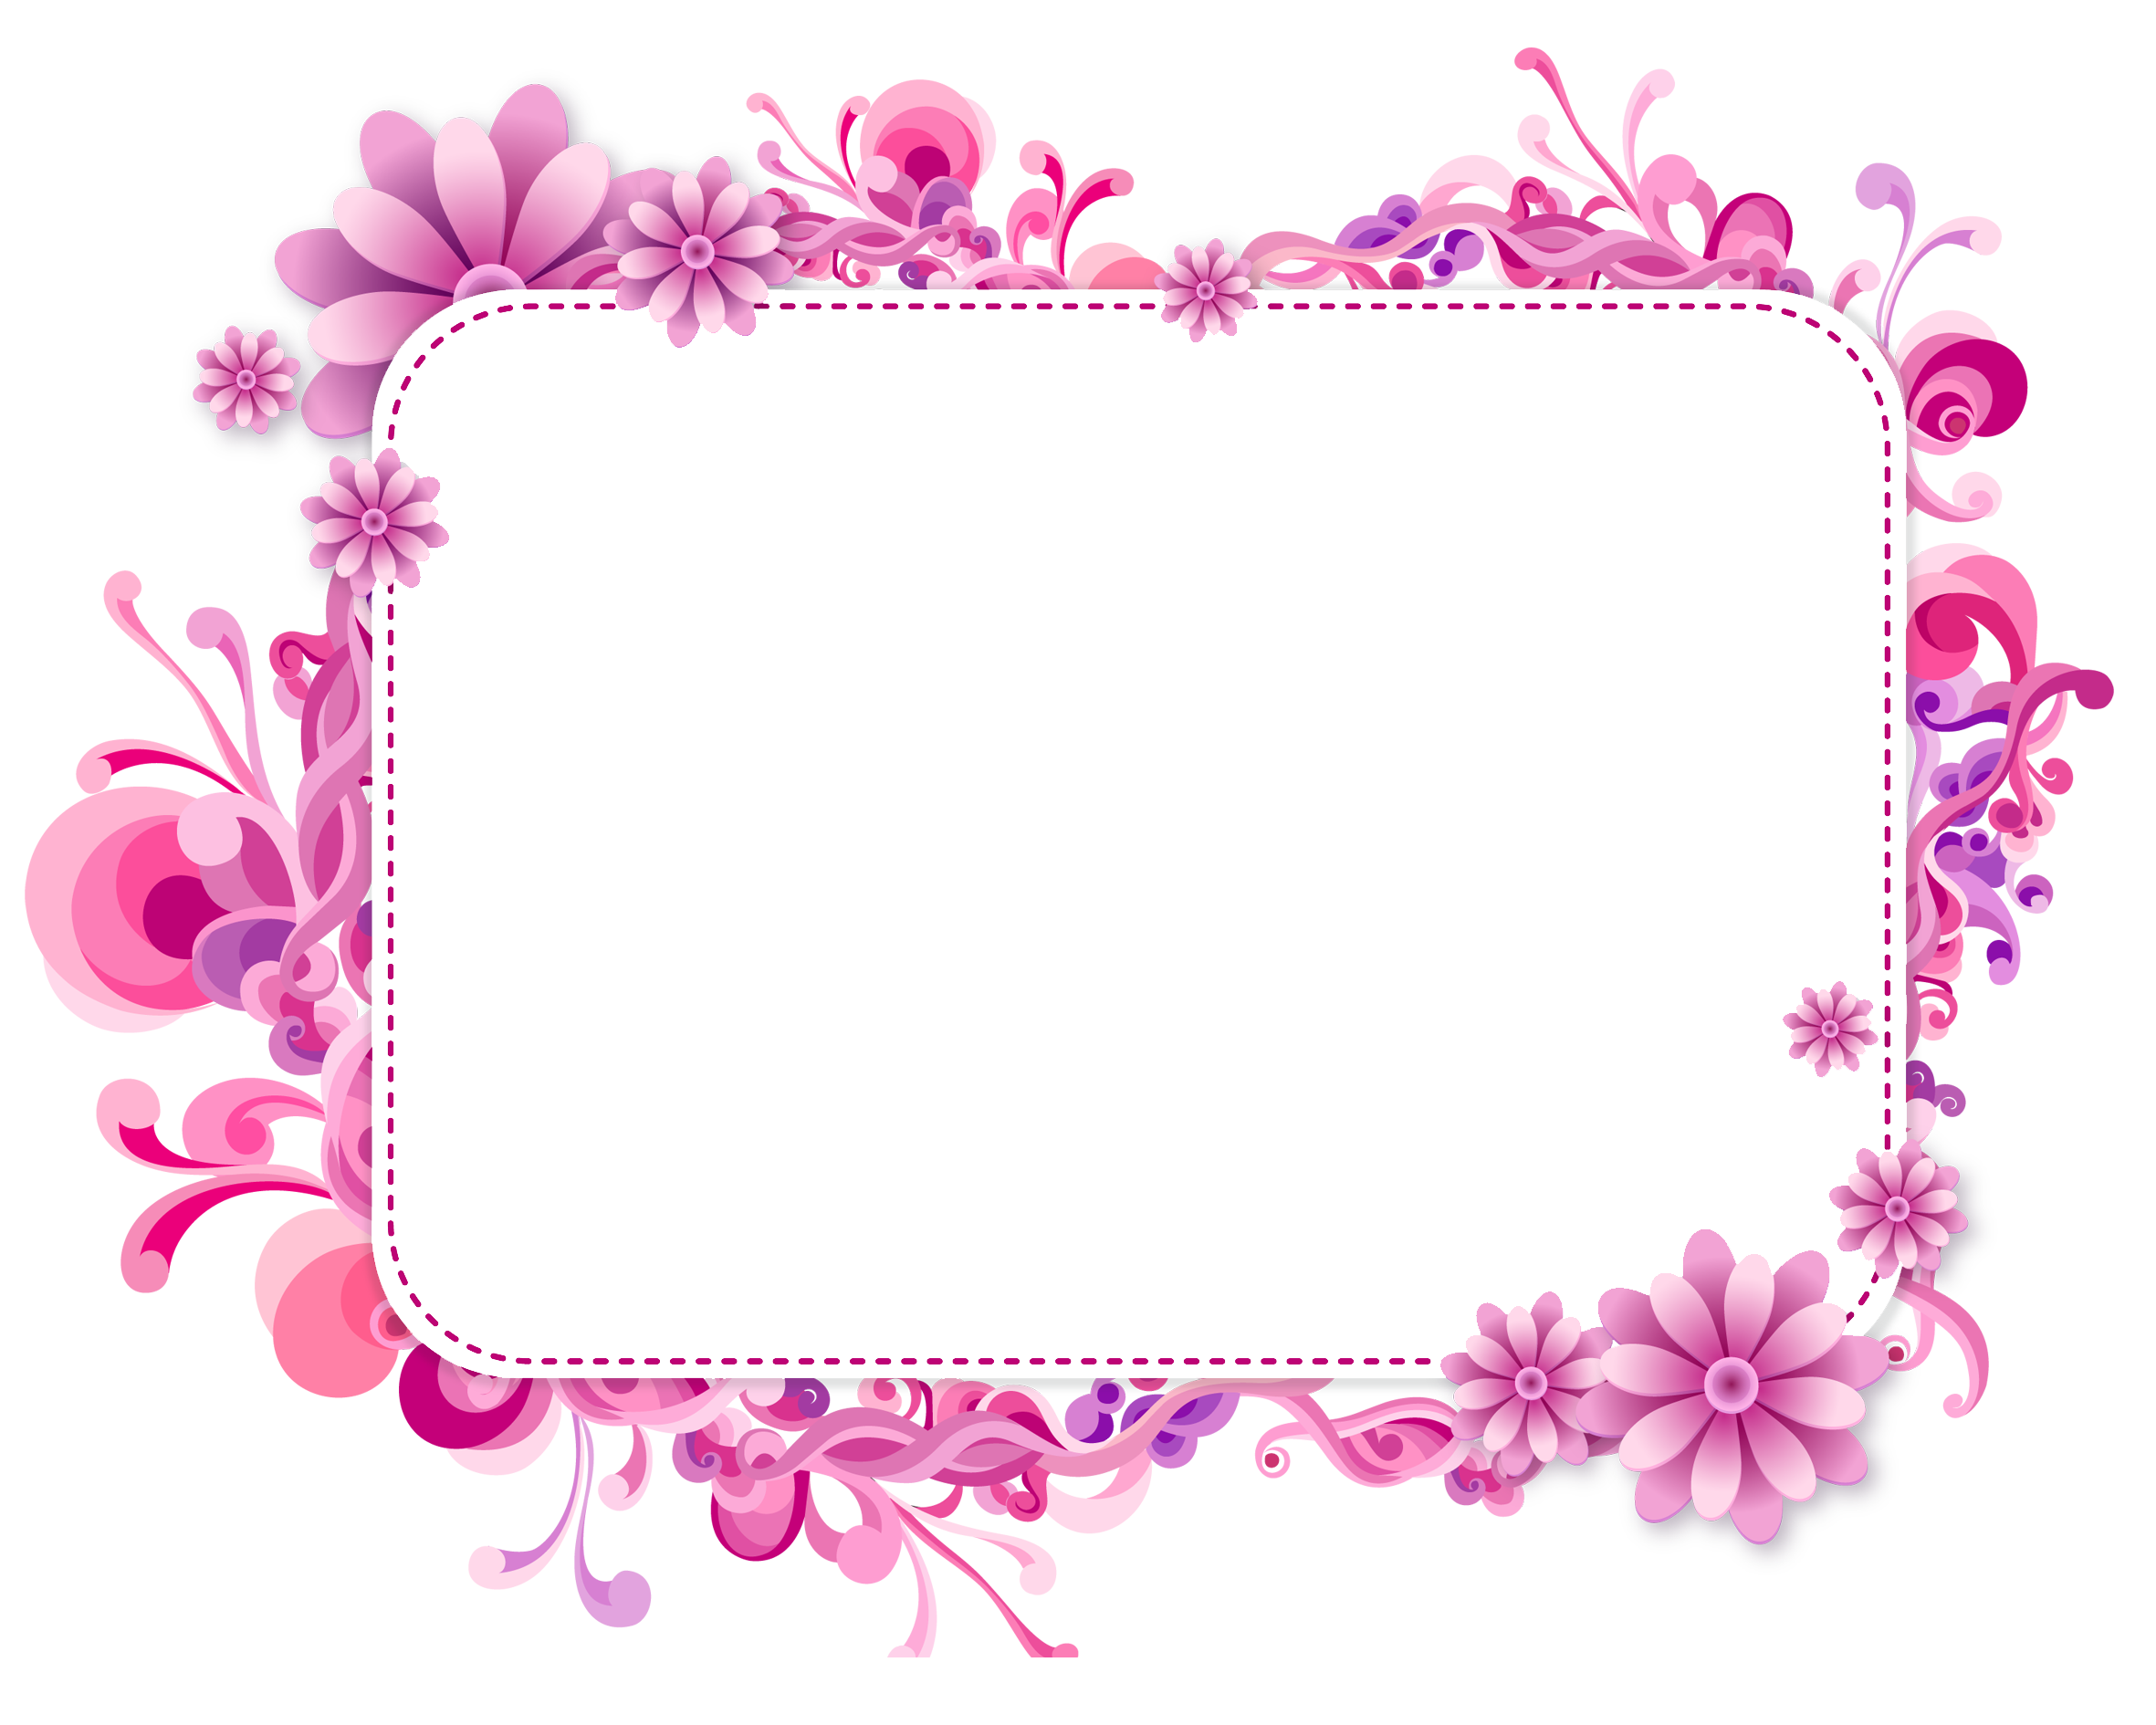 Frame design png. Blue and purple vector